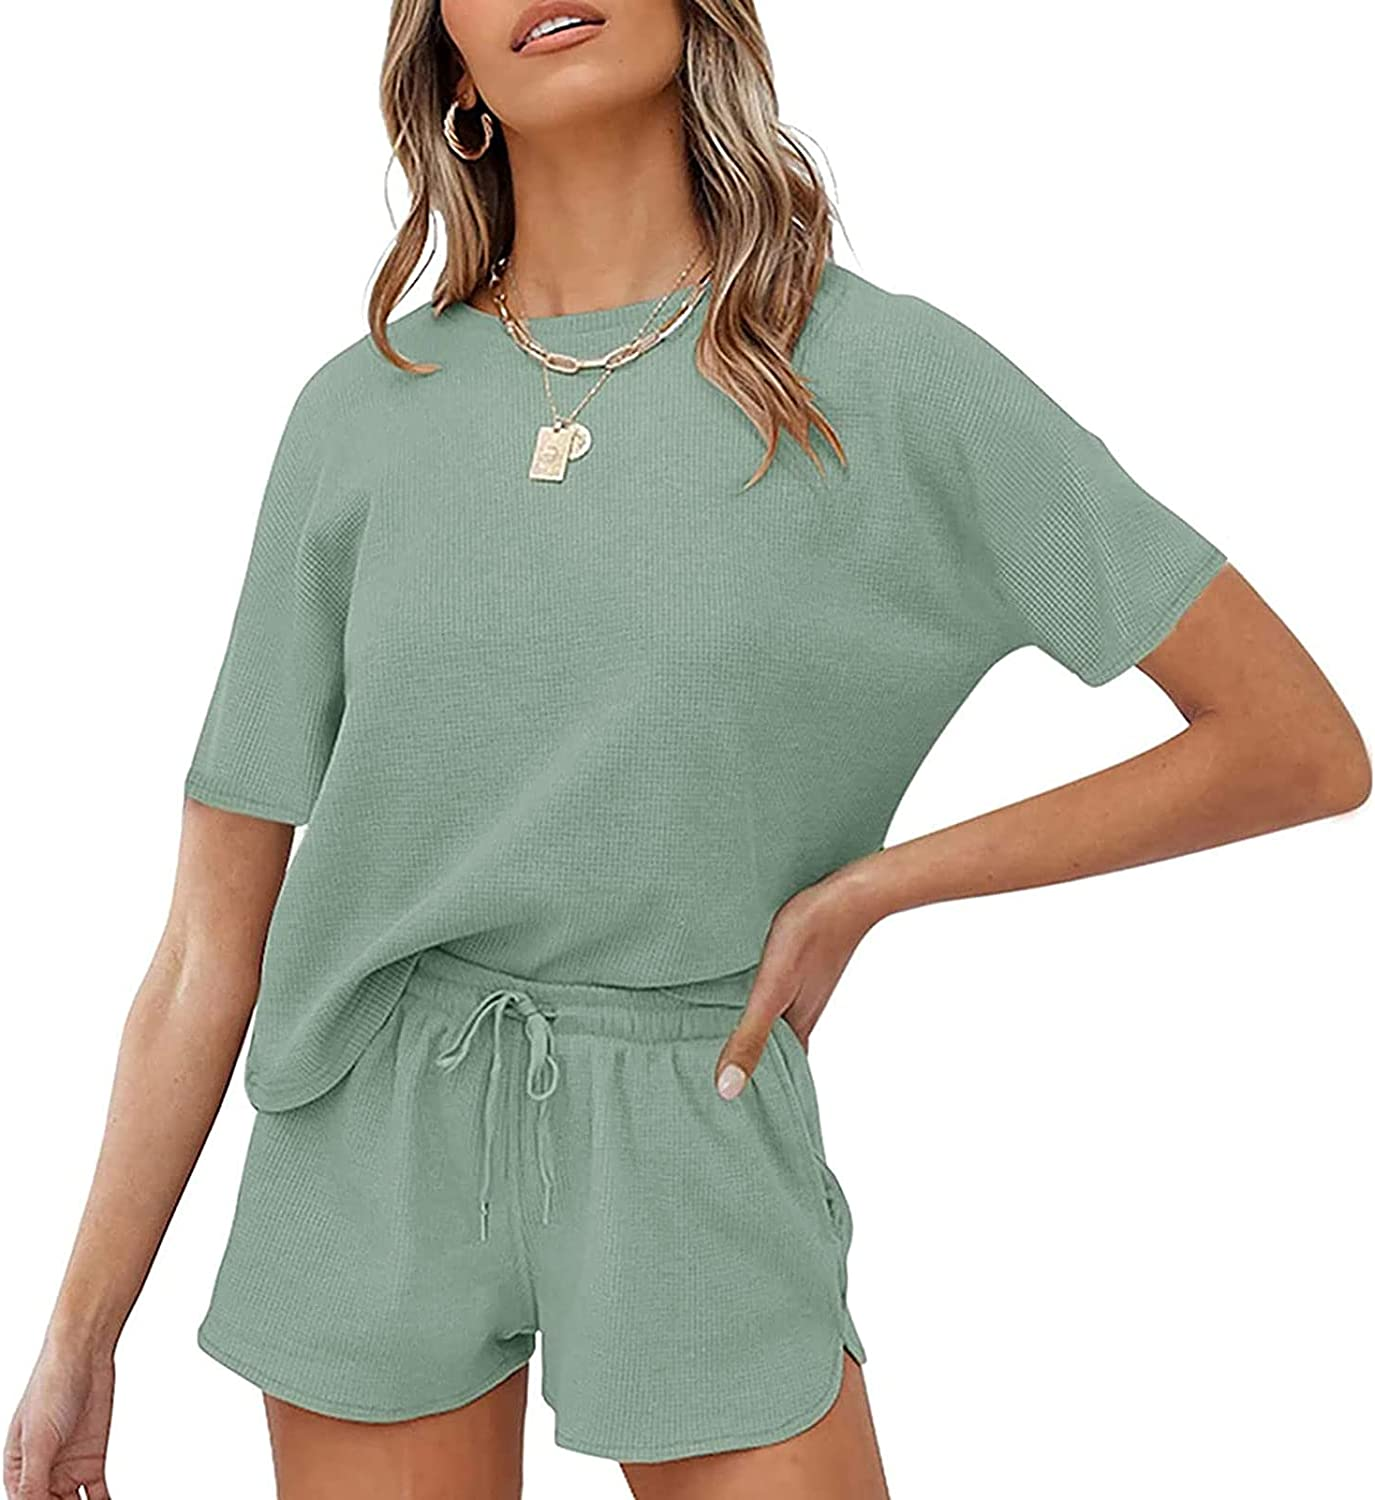 MEROKEETY Women's Short Sleeve Waffle Pajama Sets Lounge Top and Shorts 2 Piece Tracksuit Outfits